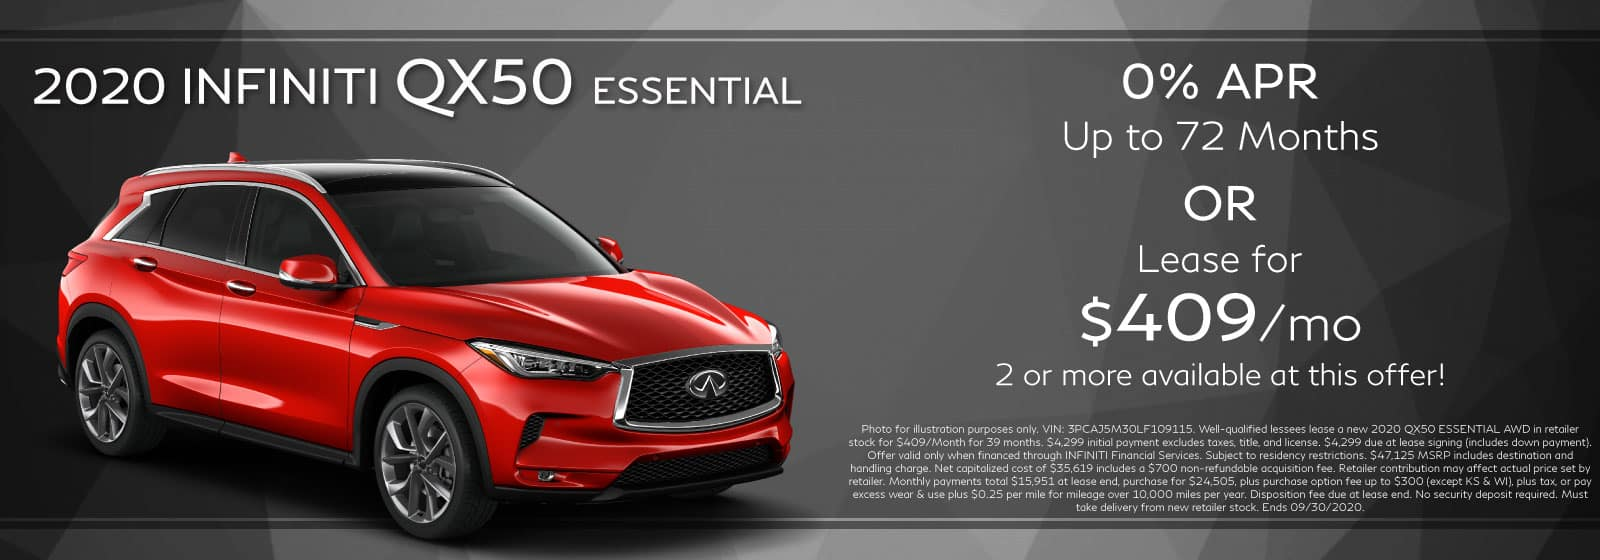 2020 QX50 Essential. Lease for $409 a month or 0% APR for up to 72 months. Red QX50 with abstract background